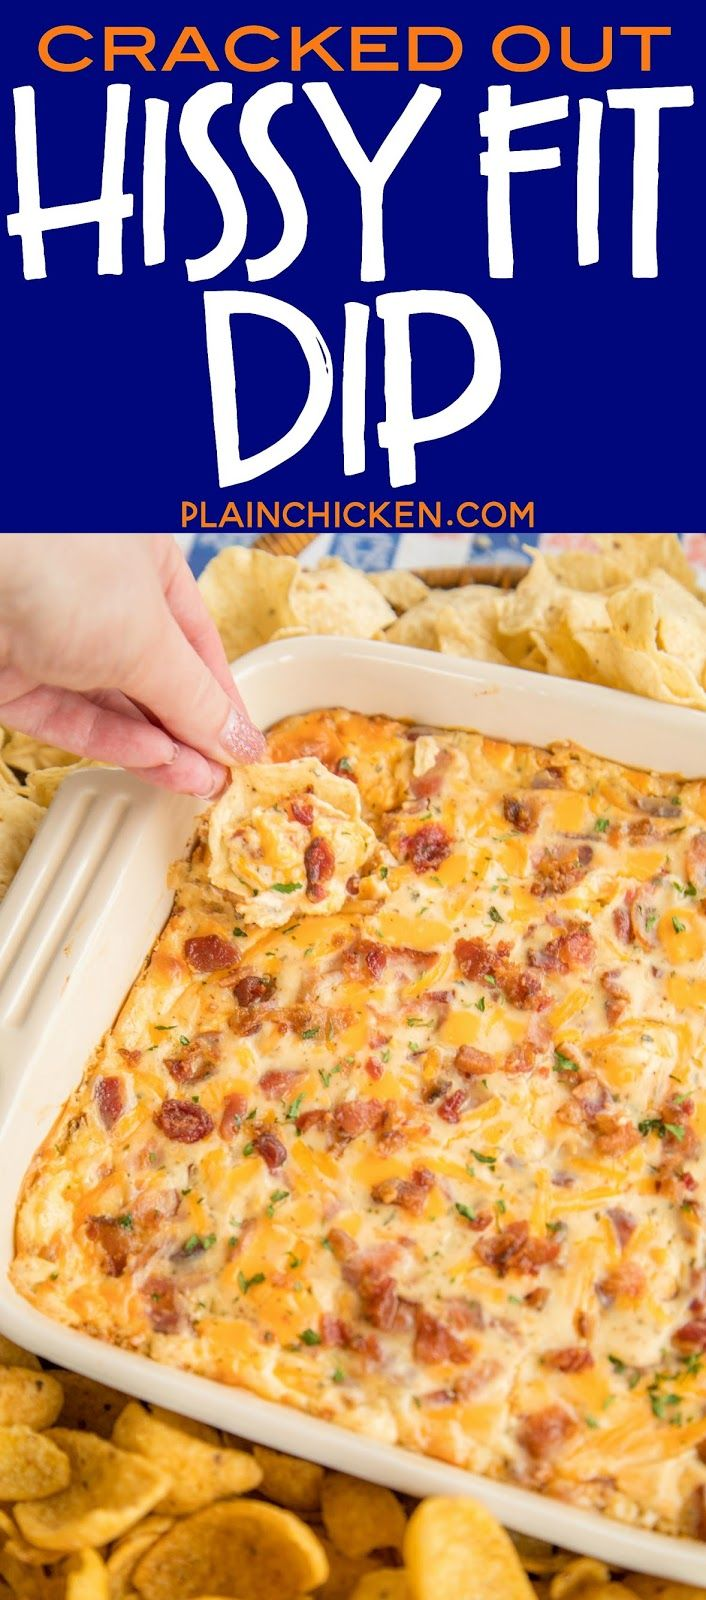 Cracked Out Hissy Fit Dip Recipe - cheddar, bacon, ranch, sour cream, Velveeta, Worcestershire sauce and parsley - SO good. You will definitely throw a hissy fit if you miss out on this dip! Crazy good! Can mix together and refrigerate a day before baking. Serve with chips and veggies! It is always gone in a flash!